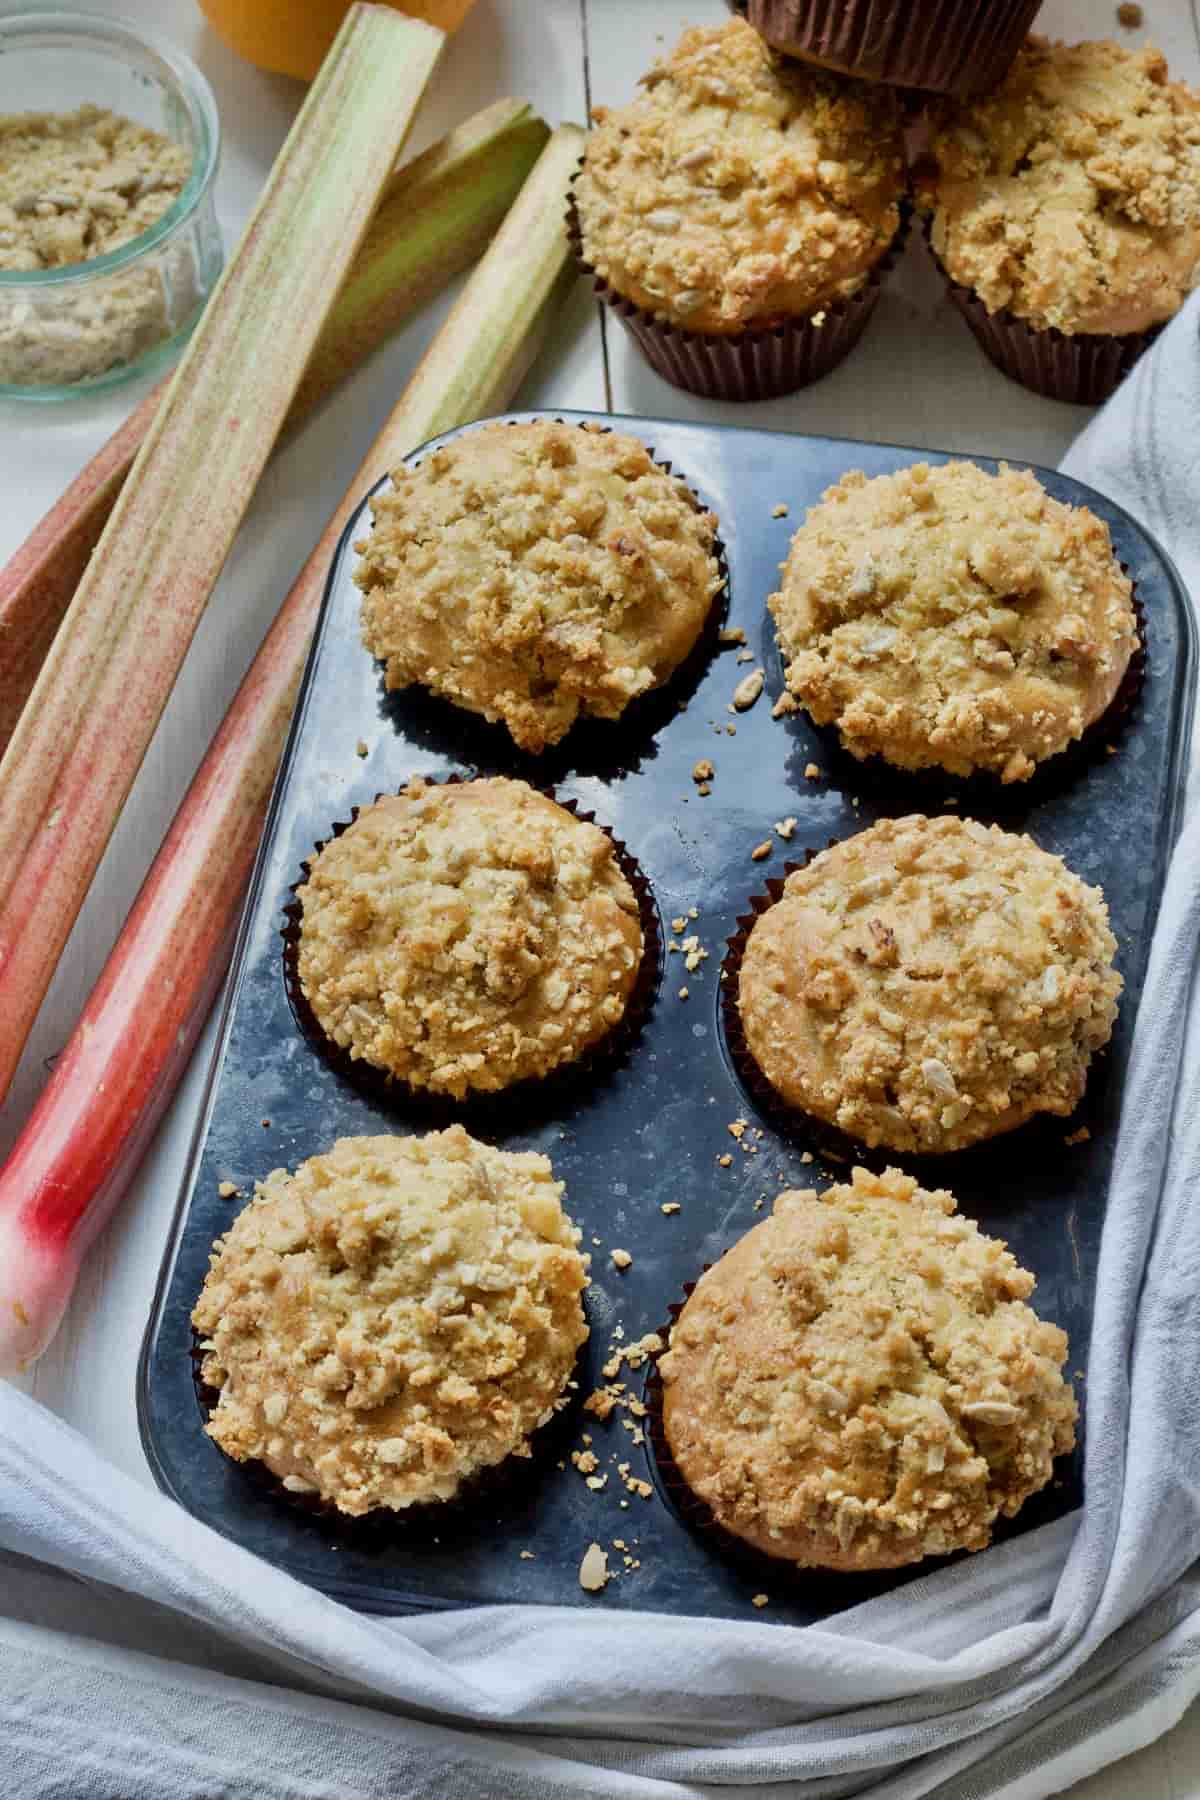 Baked rhubarb muffins still in a muffin tin.